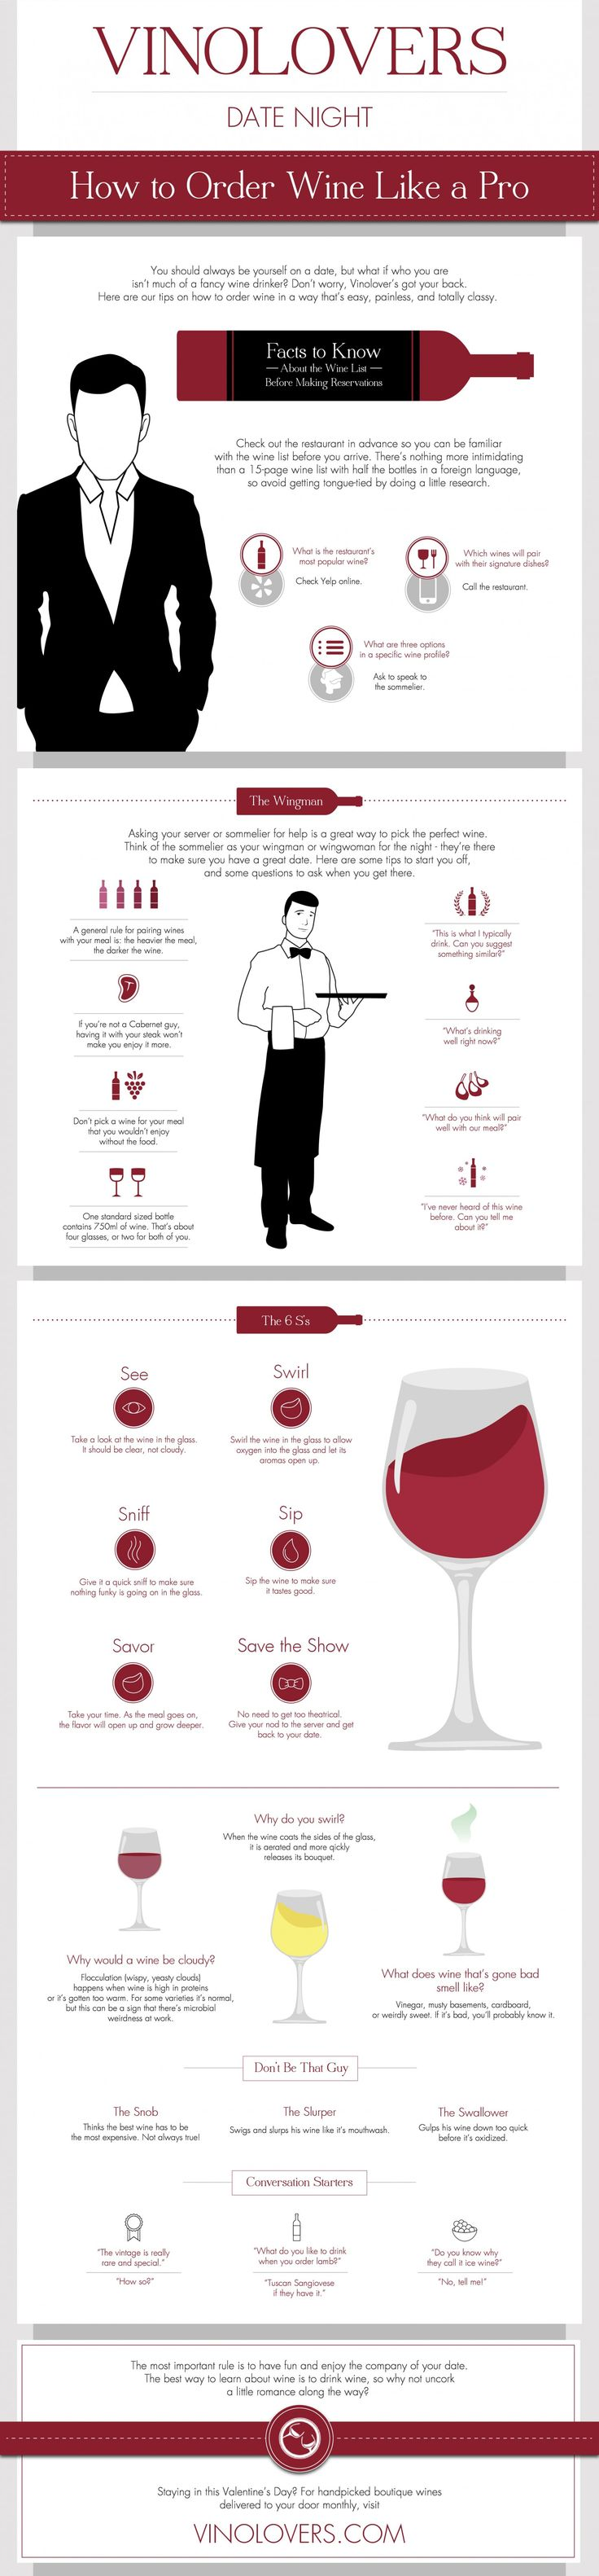 How to Order Wine Like a Pro Infographic